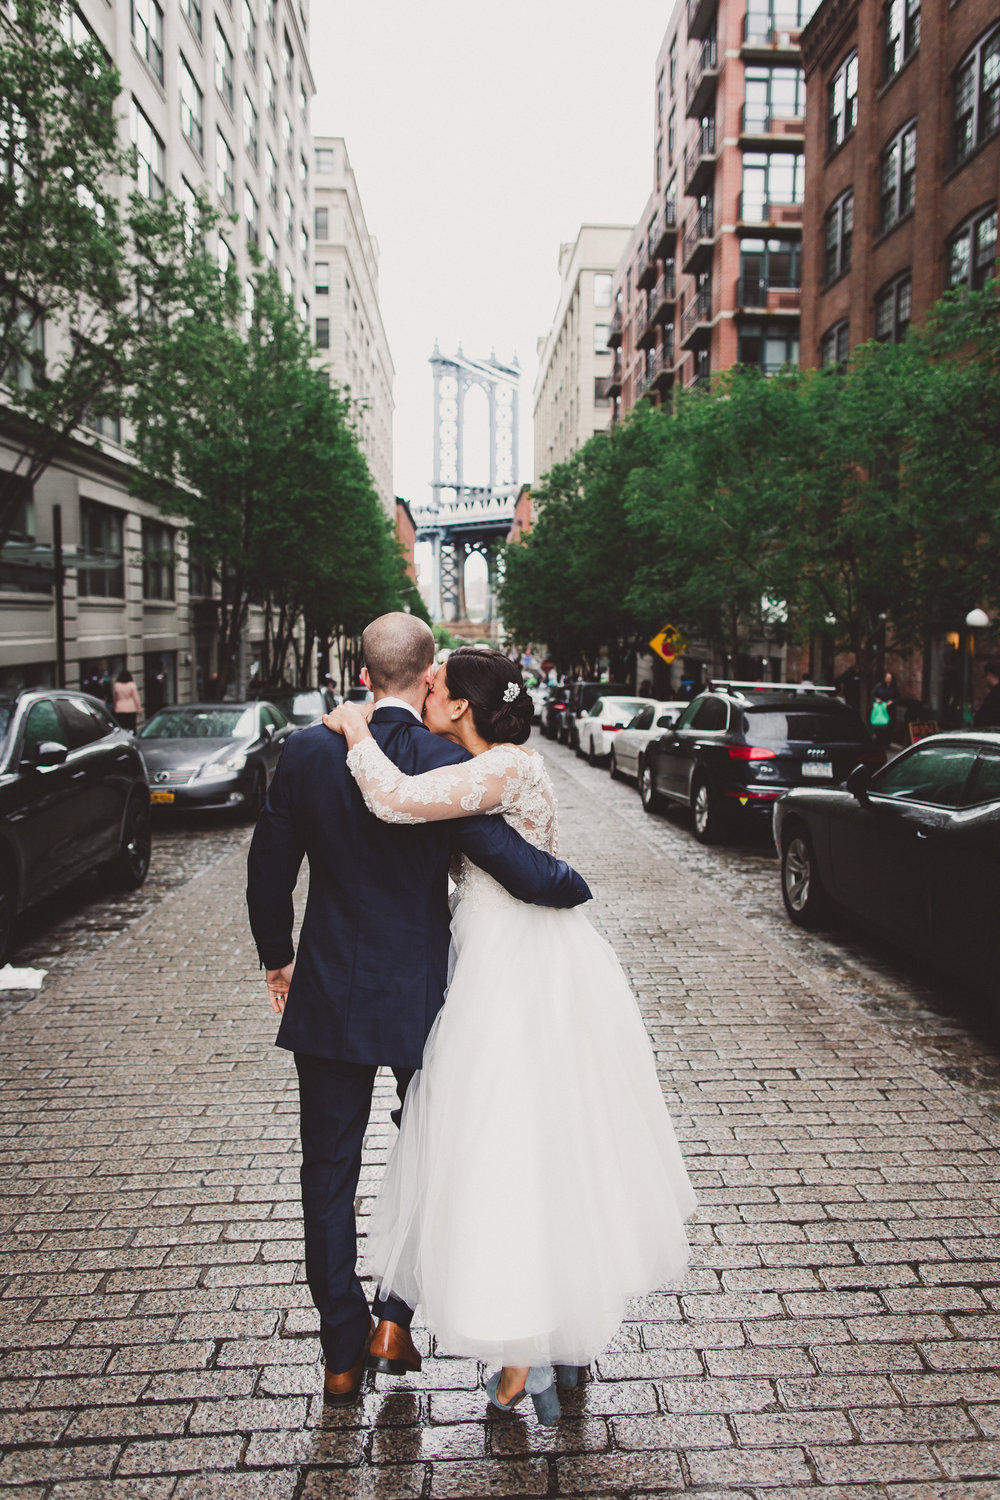 Wagner-Cove-Central-Park-Elopement-New-York-Documentary-Wedding-Photographer-40.jpg